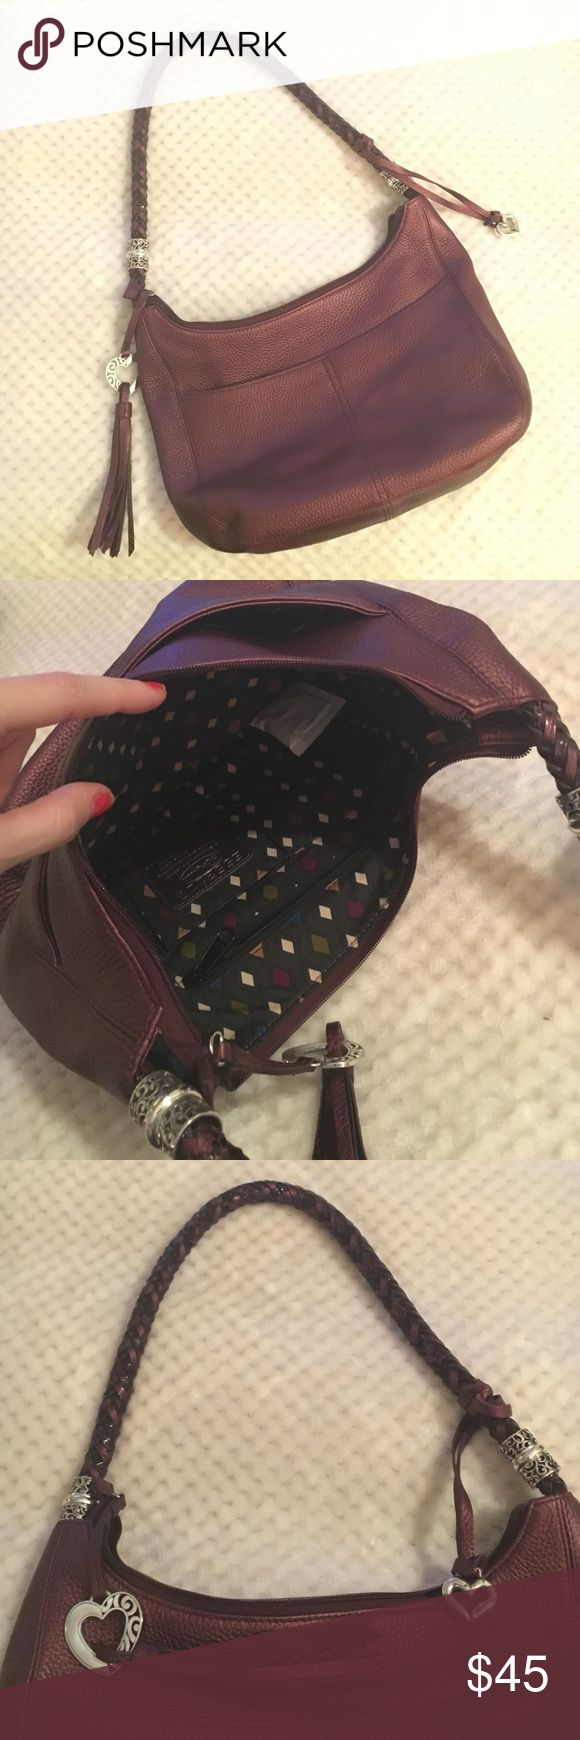 Brighton purse Beautiful Brighton bag. Deep red/wine leather. NWOT. Has four outside pockets, multiple inside pockets. Brighton Bags